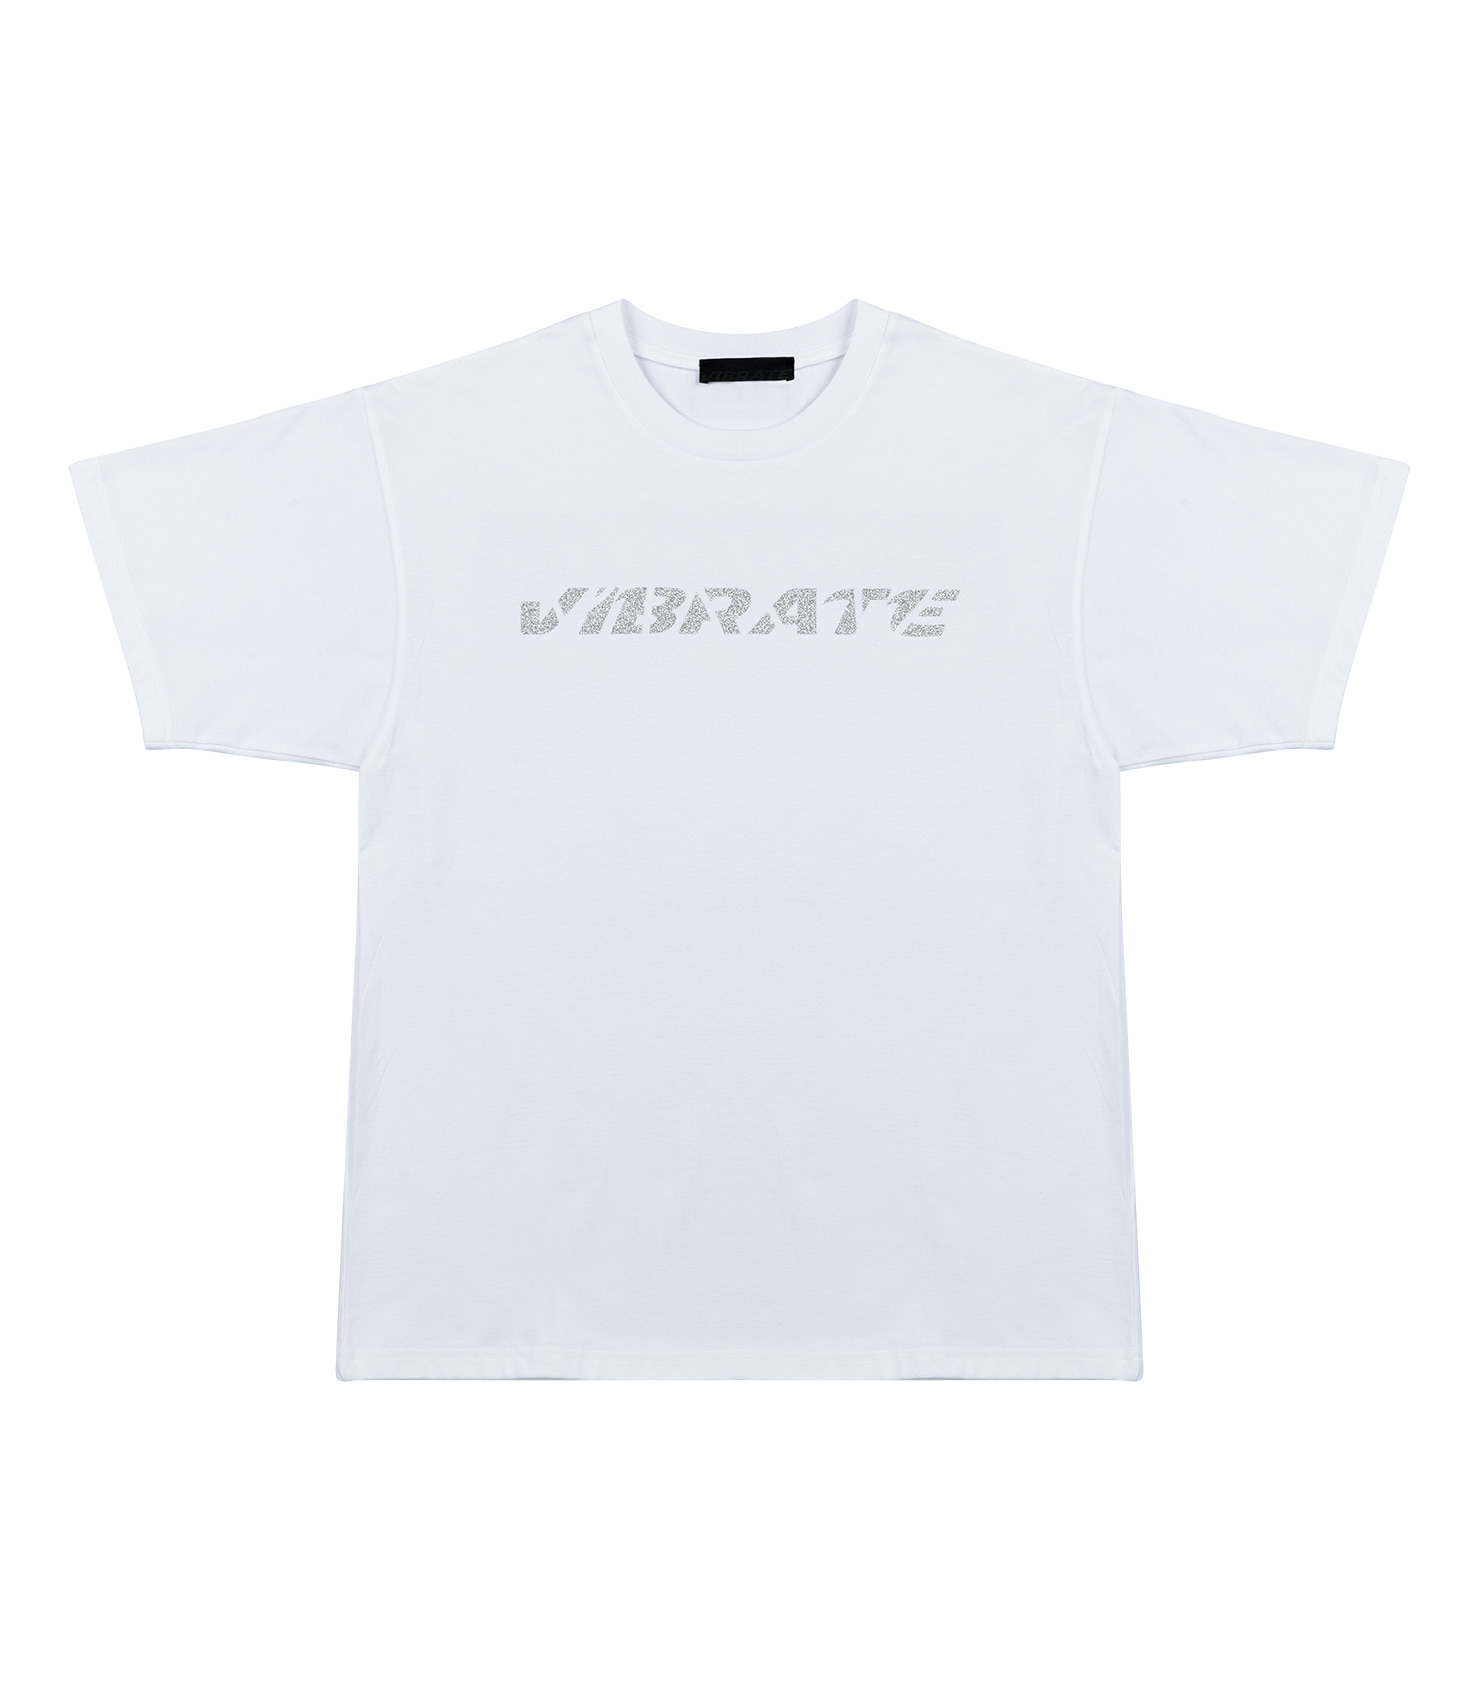 V FLASH M008 T-SHIRT (WHITE)